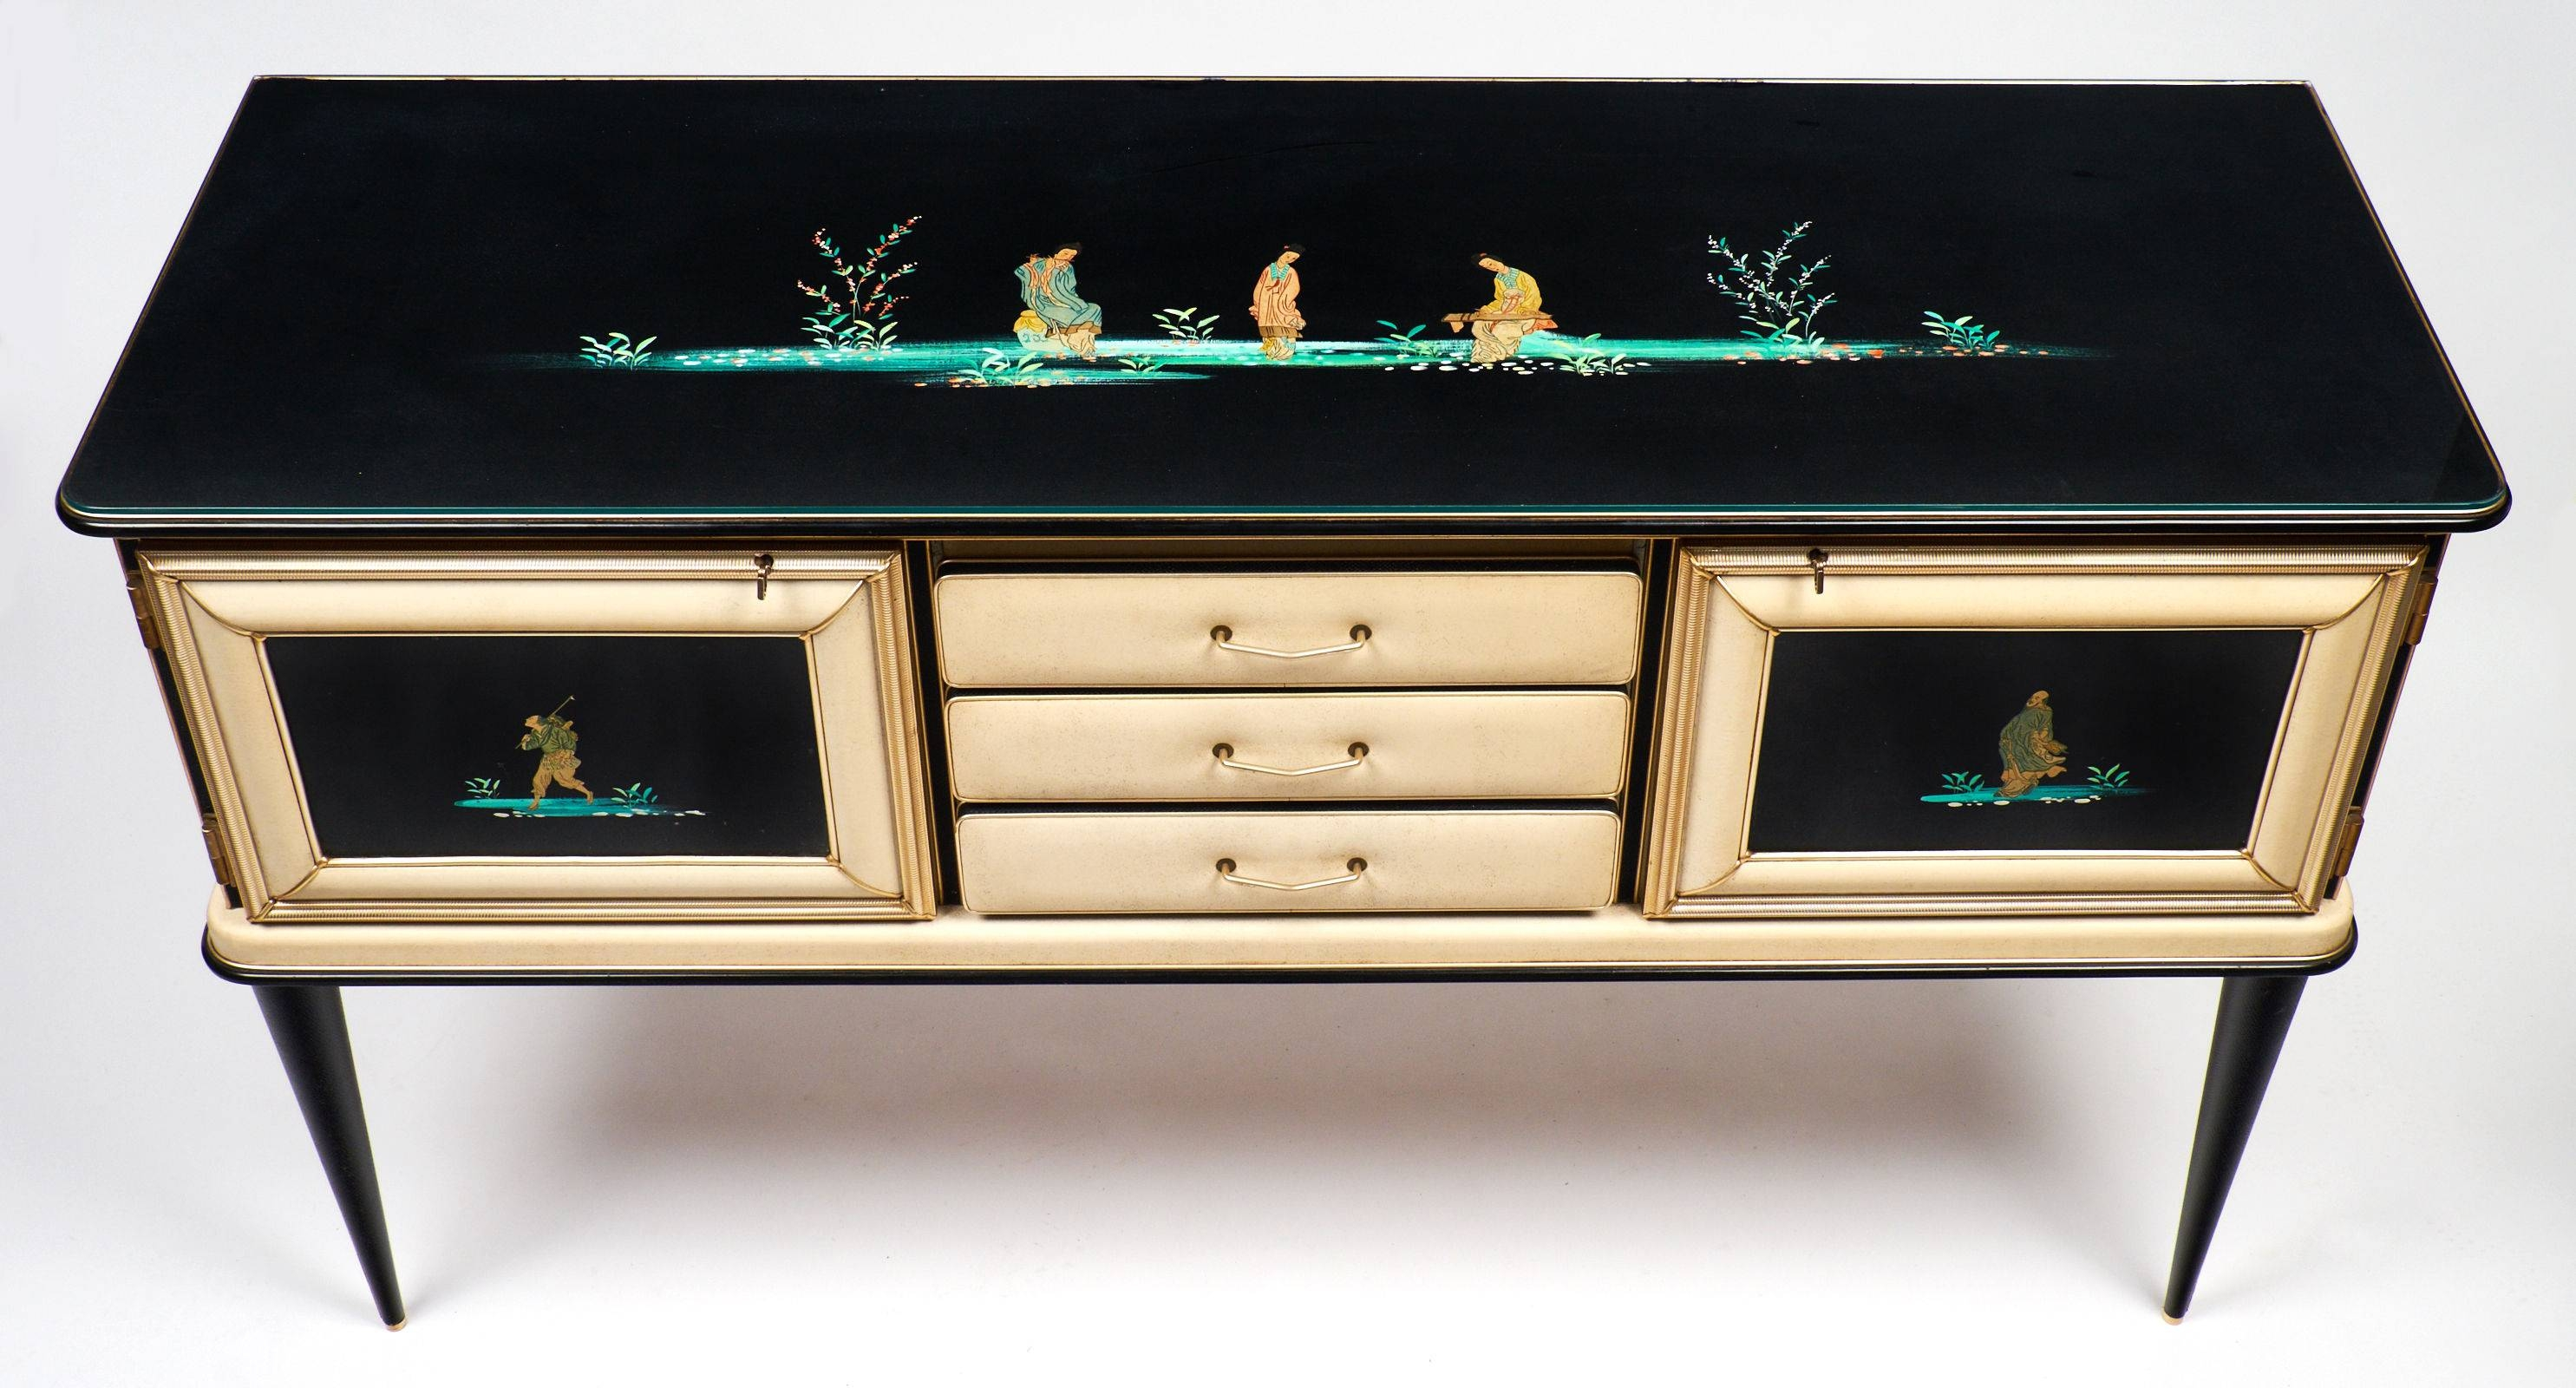 Vintage Umberto Mascagni Chinoiserie Sideboard - Jean Marc Fray regarding Chinoiserie Sideboards (Image 27 of 30)